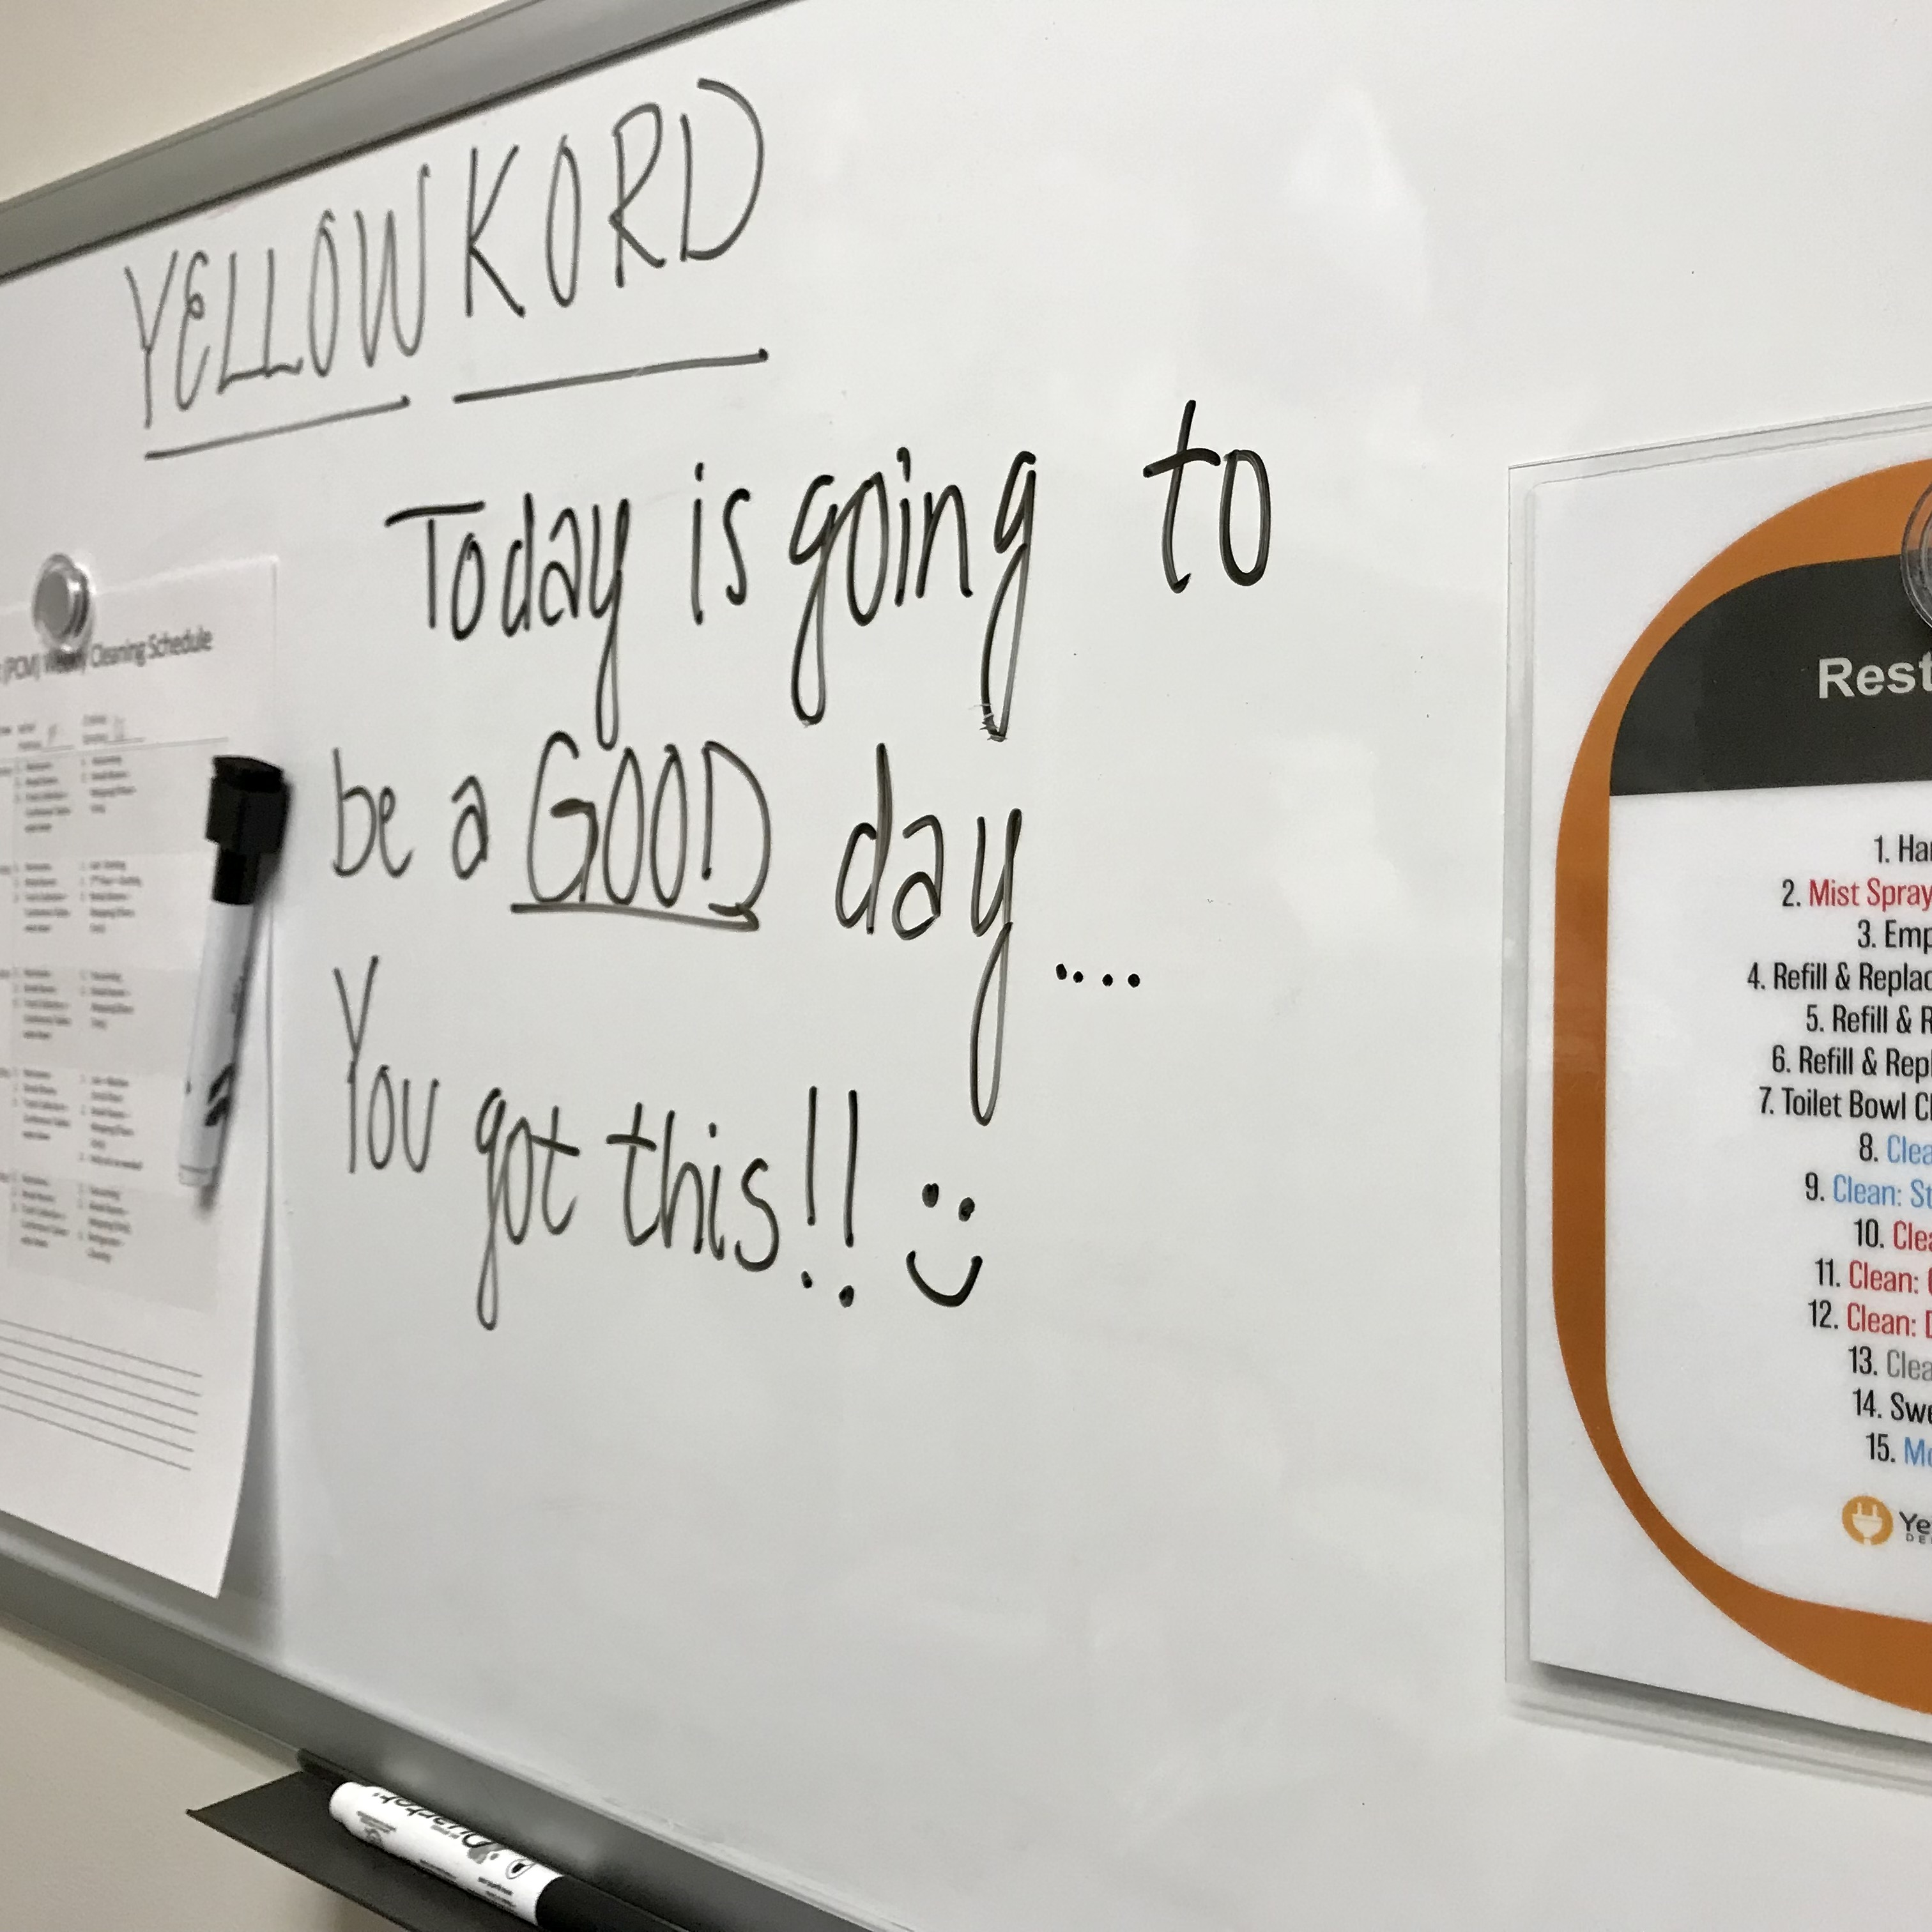 A dry erase board holding up employees schedule and cleaning task cards at Yellow Kord